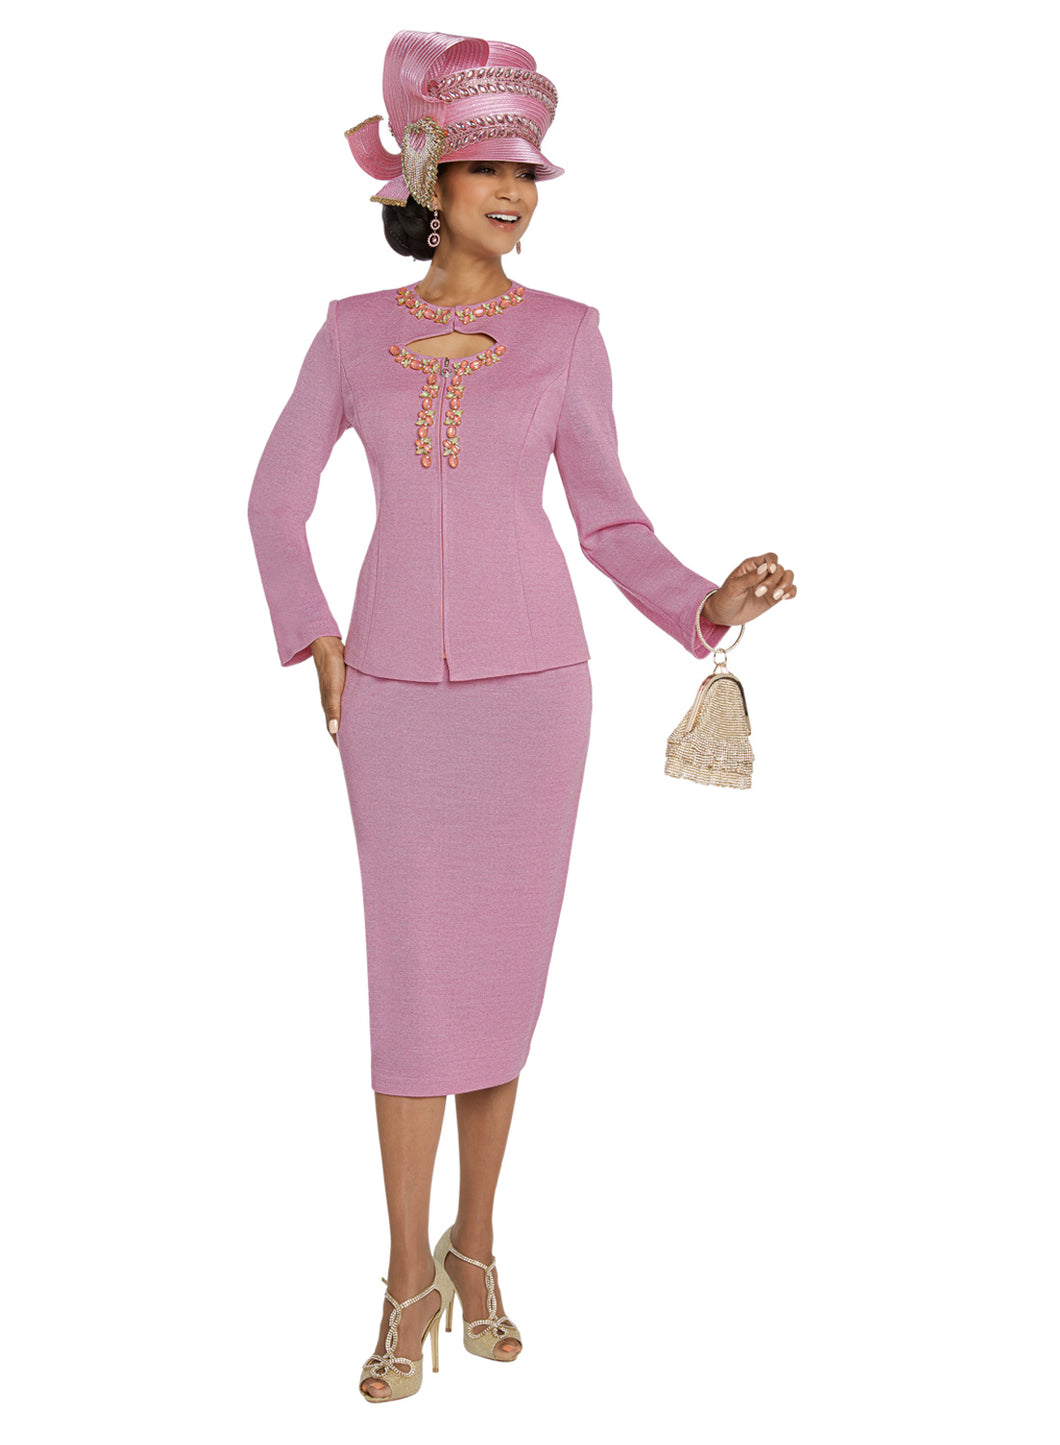 Donna Vinci Pink Knit 2 piece Jacket and Skirt Set - 13270